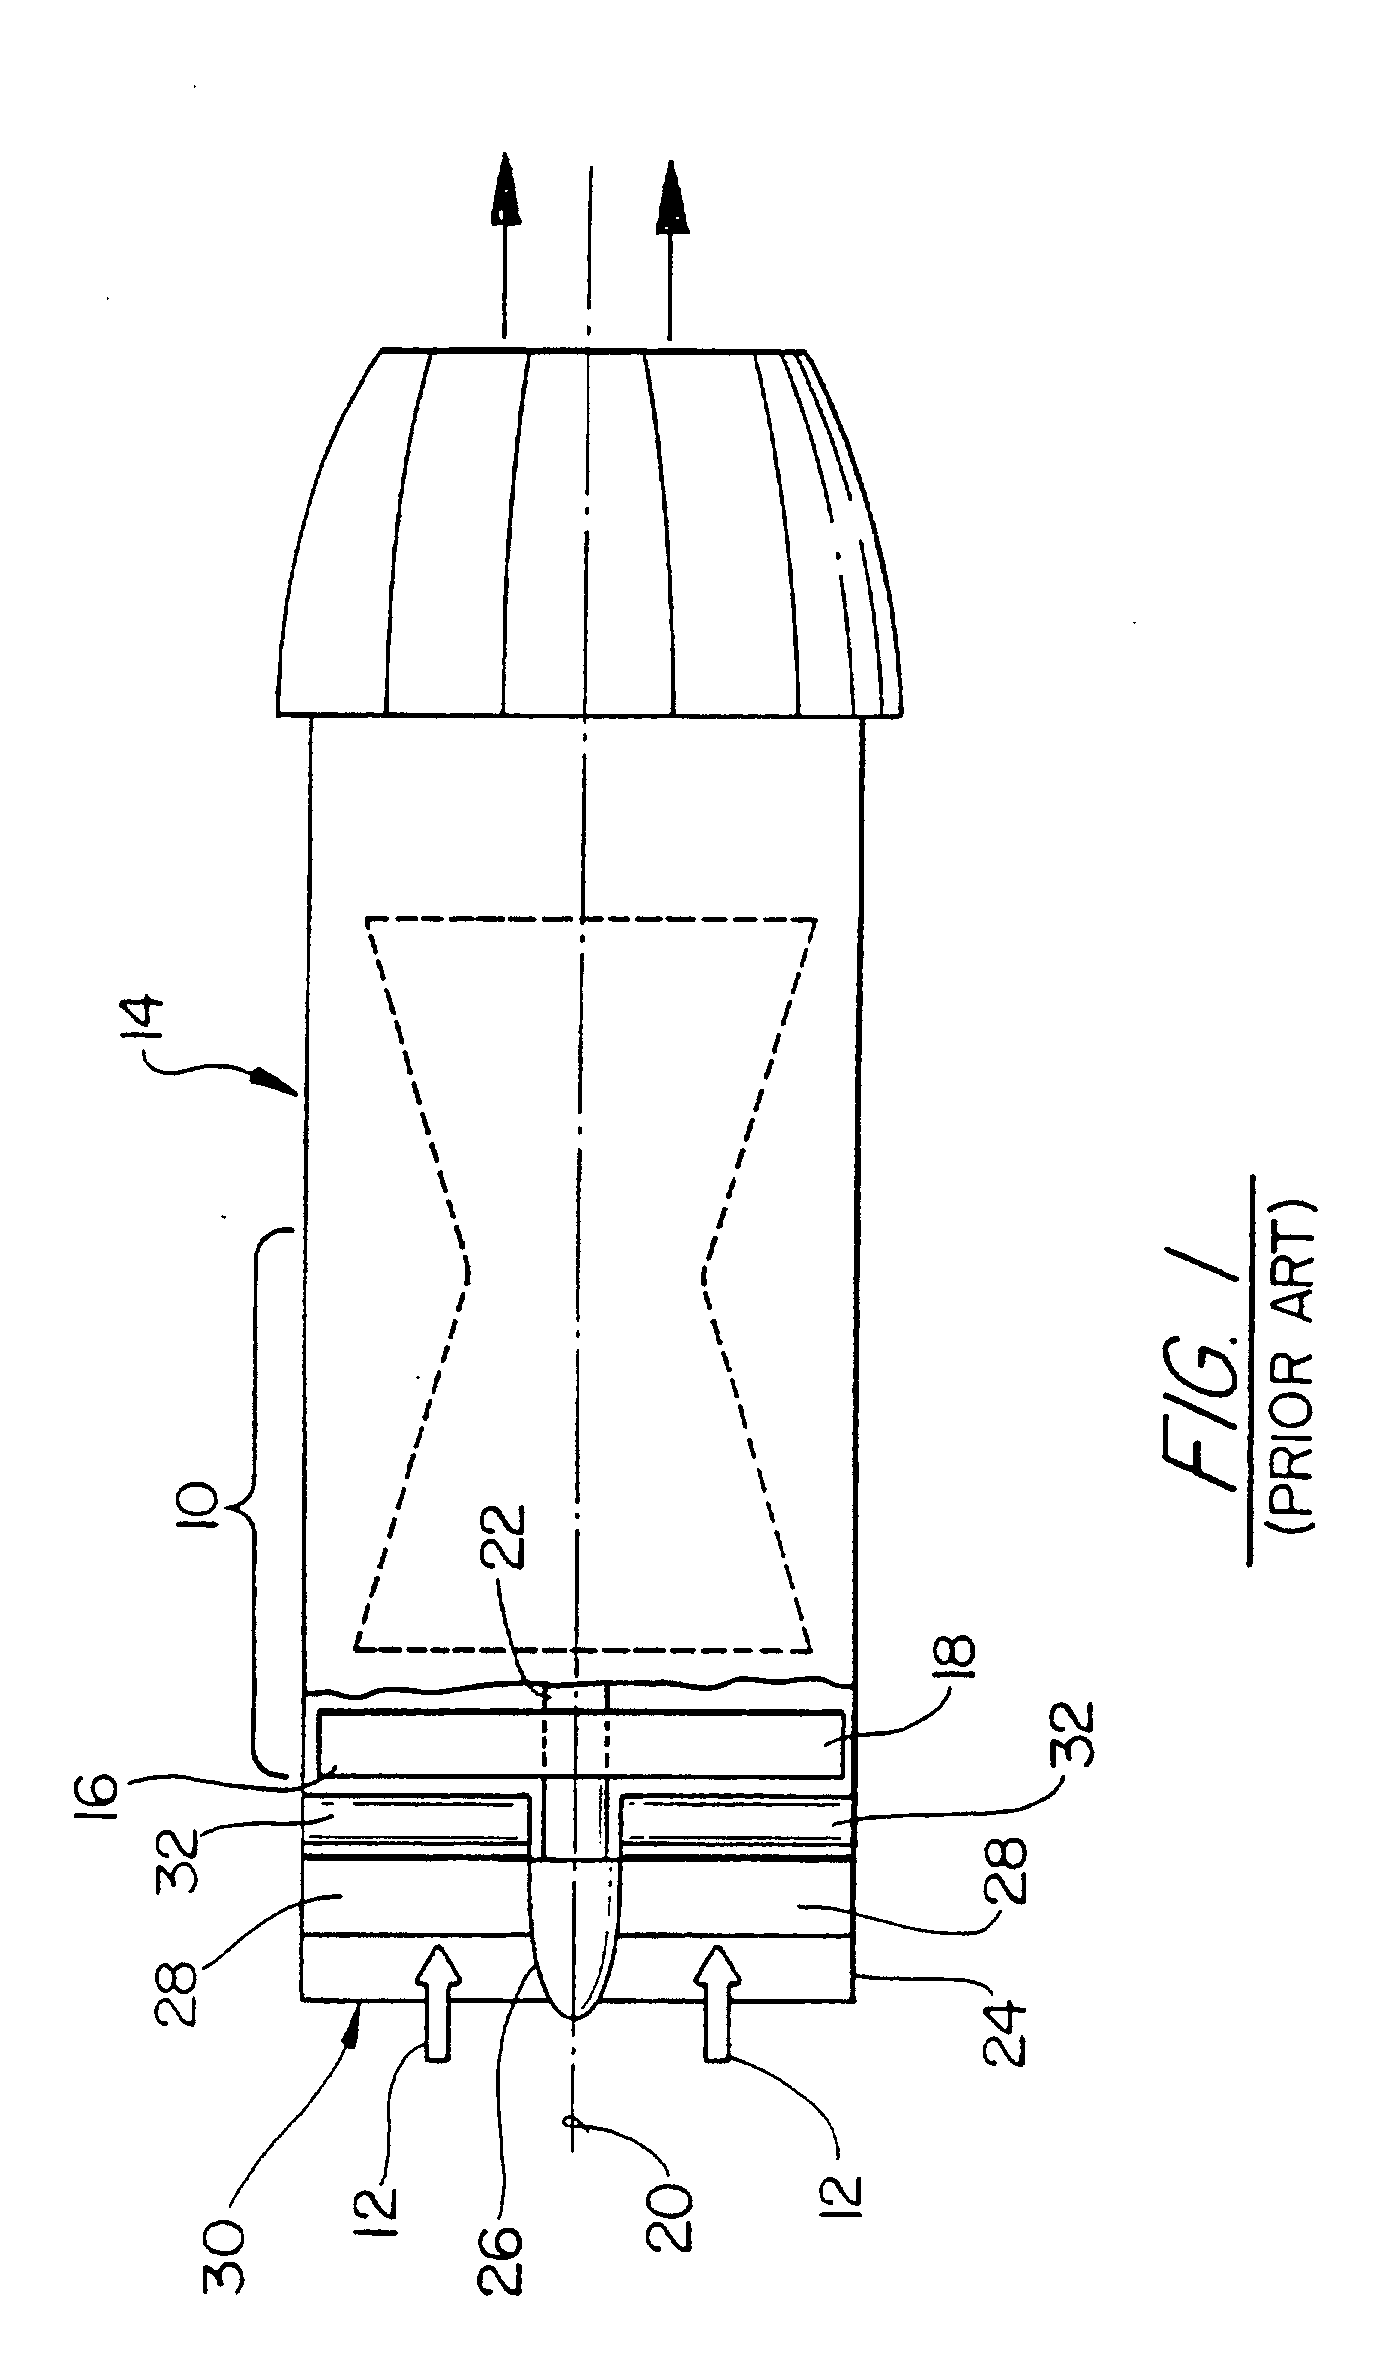 Patent EP B1 Variable inlet guide vane for a gas turbine